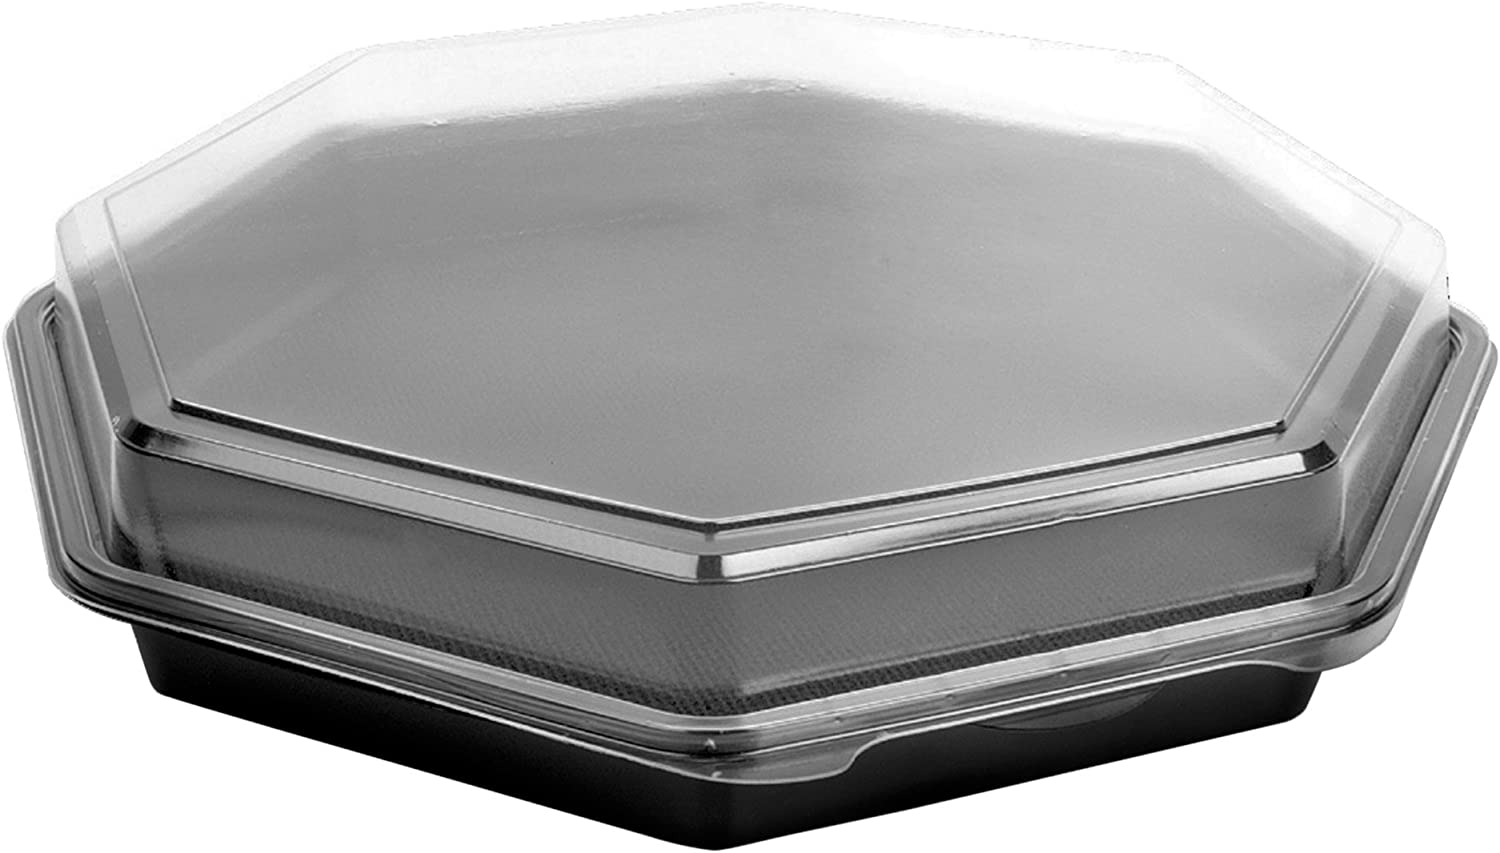 Solo 863611-PS94 12 in Black Clear PS Plastic Hinged Container, 12.47 X 12.01 in (Case of 100)